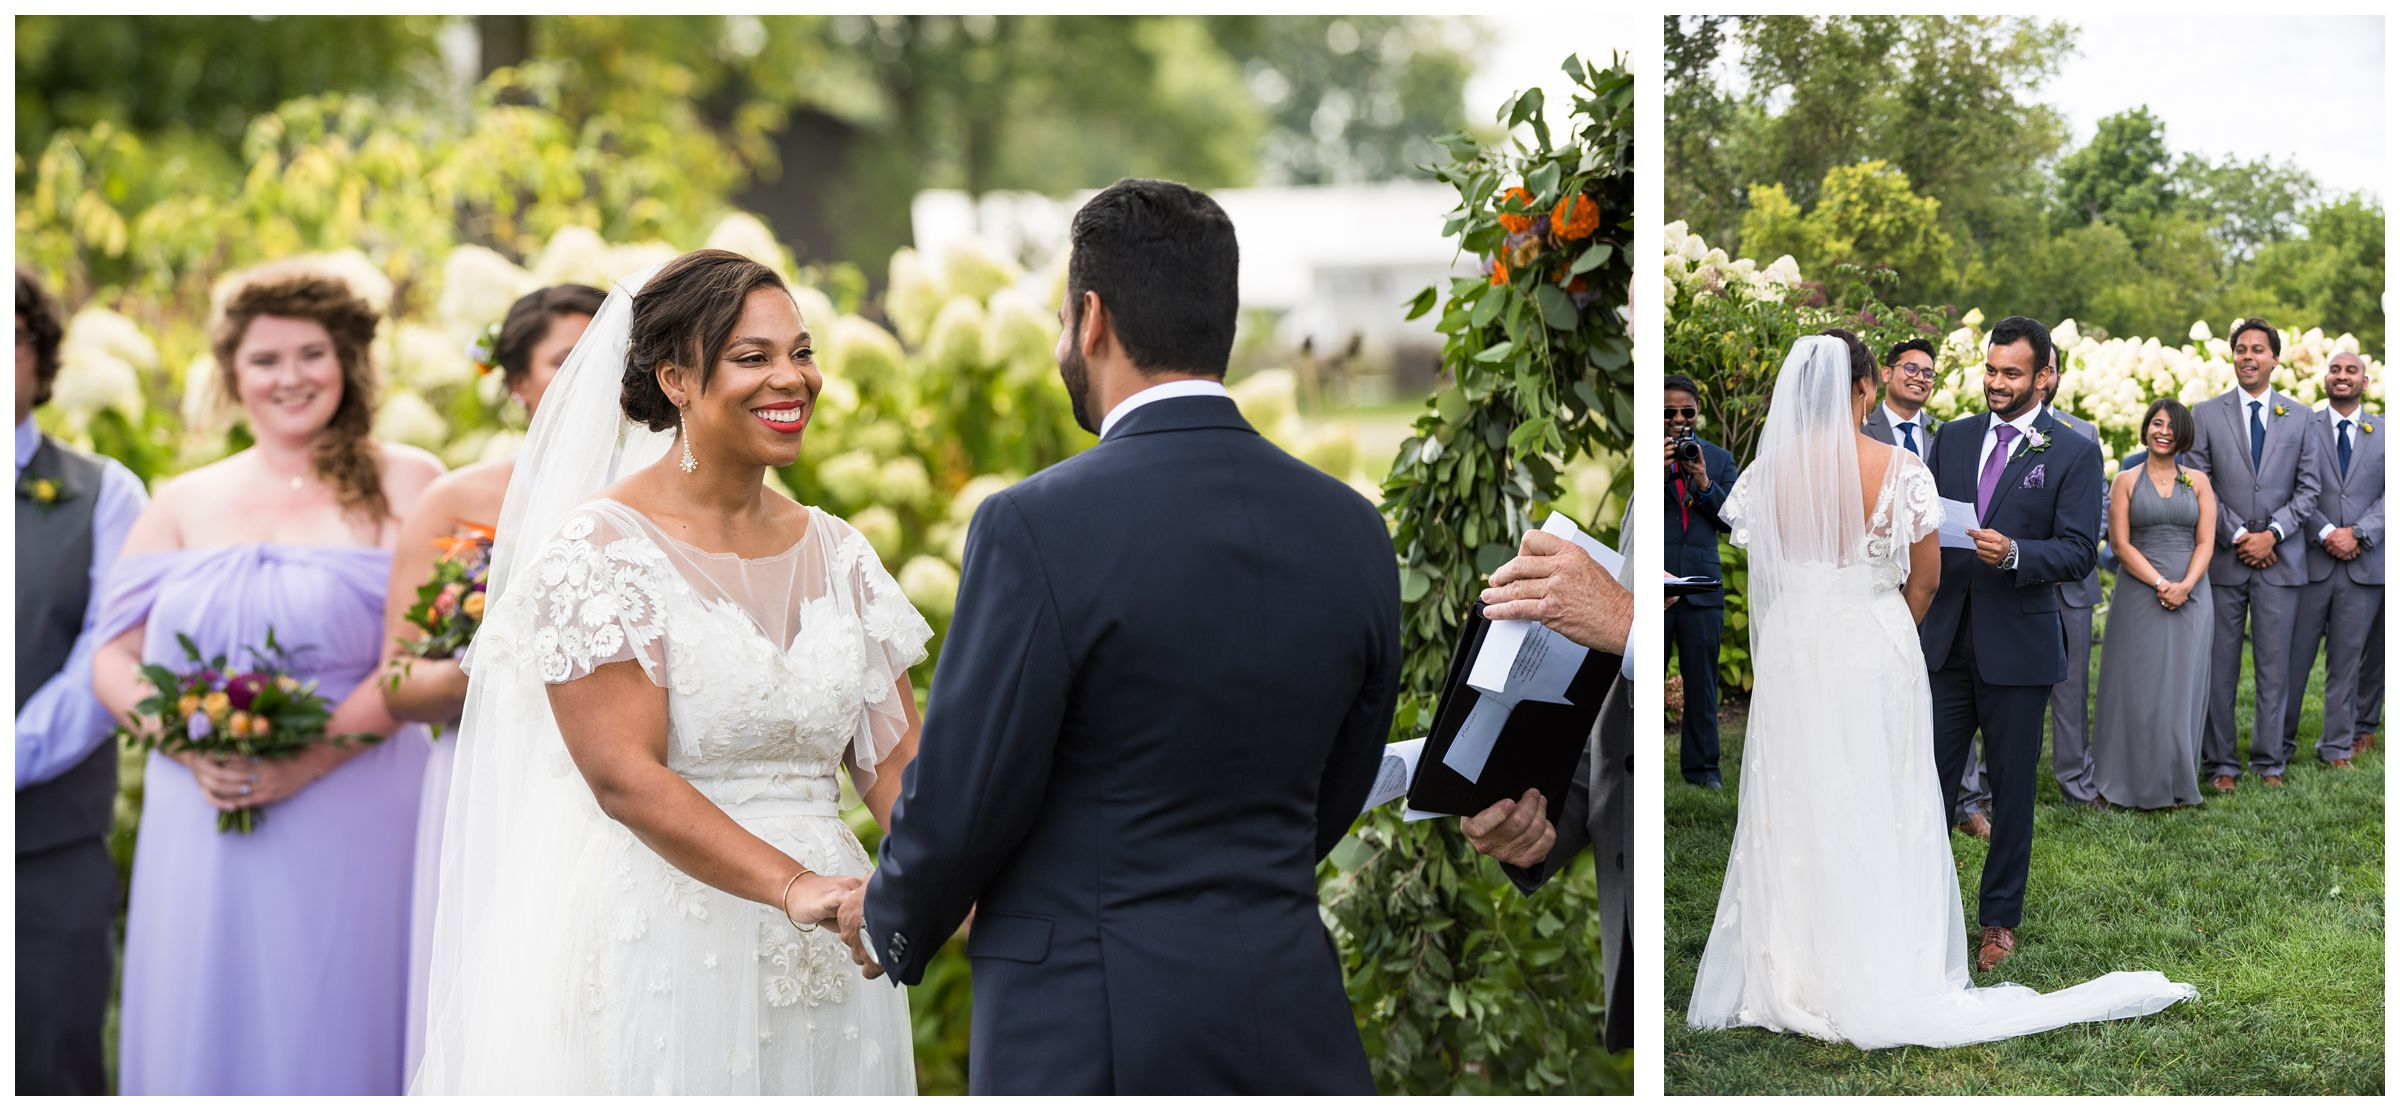 Indian groom and African American bride exchanging vows during summer wedding ceremony at Jorgensen Farms in Columbus Ohio